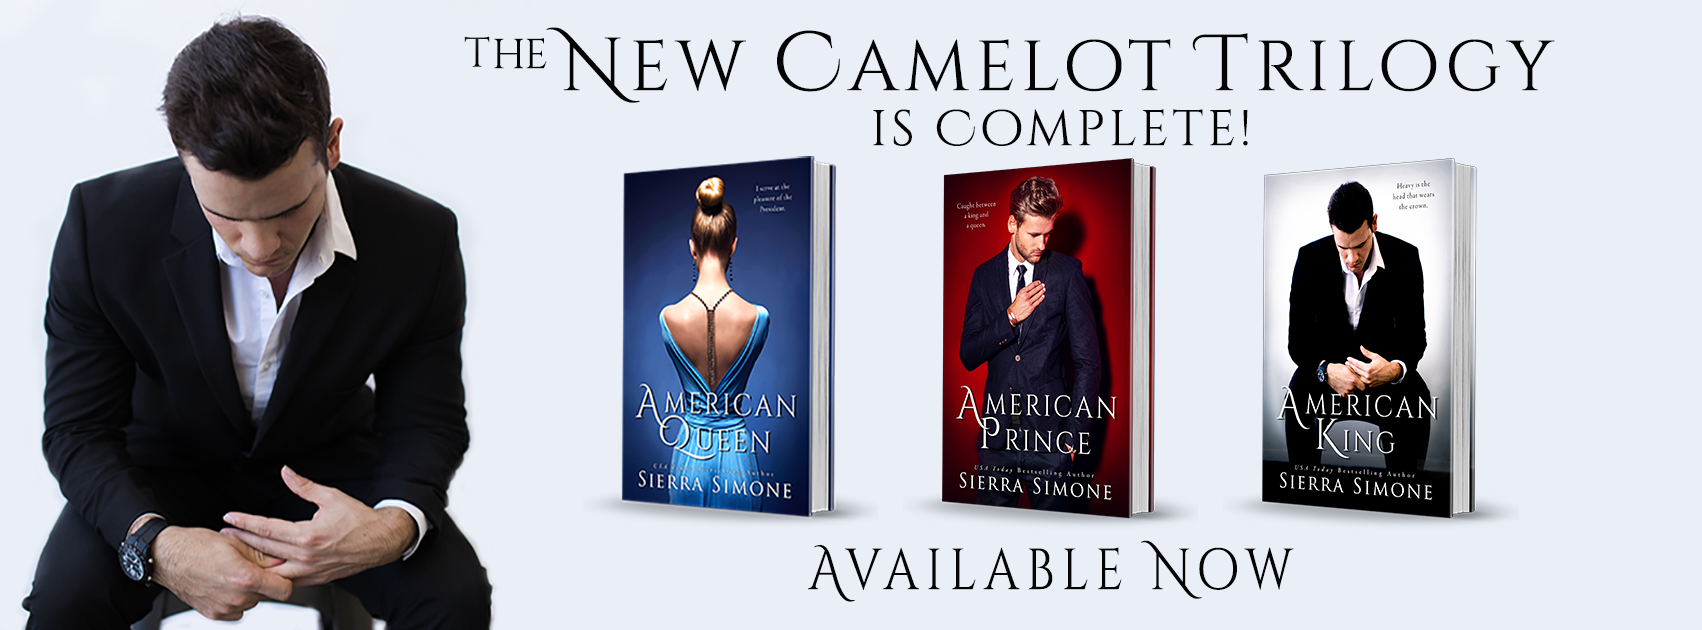 Series Review: The New Camelot Trilogy by Sierra Simone